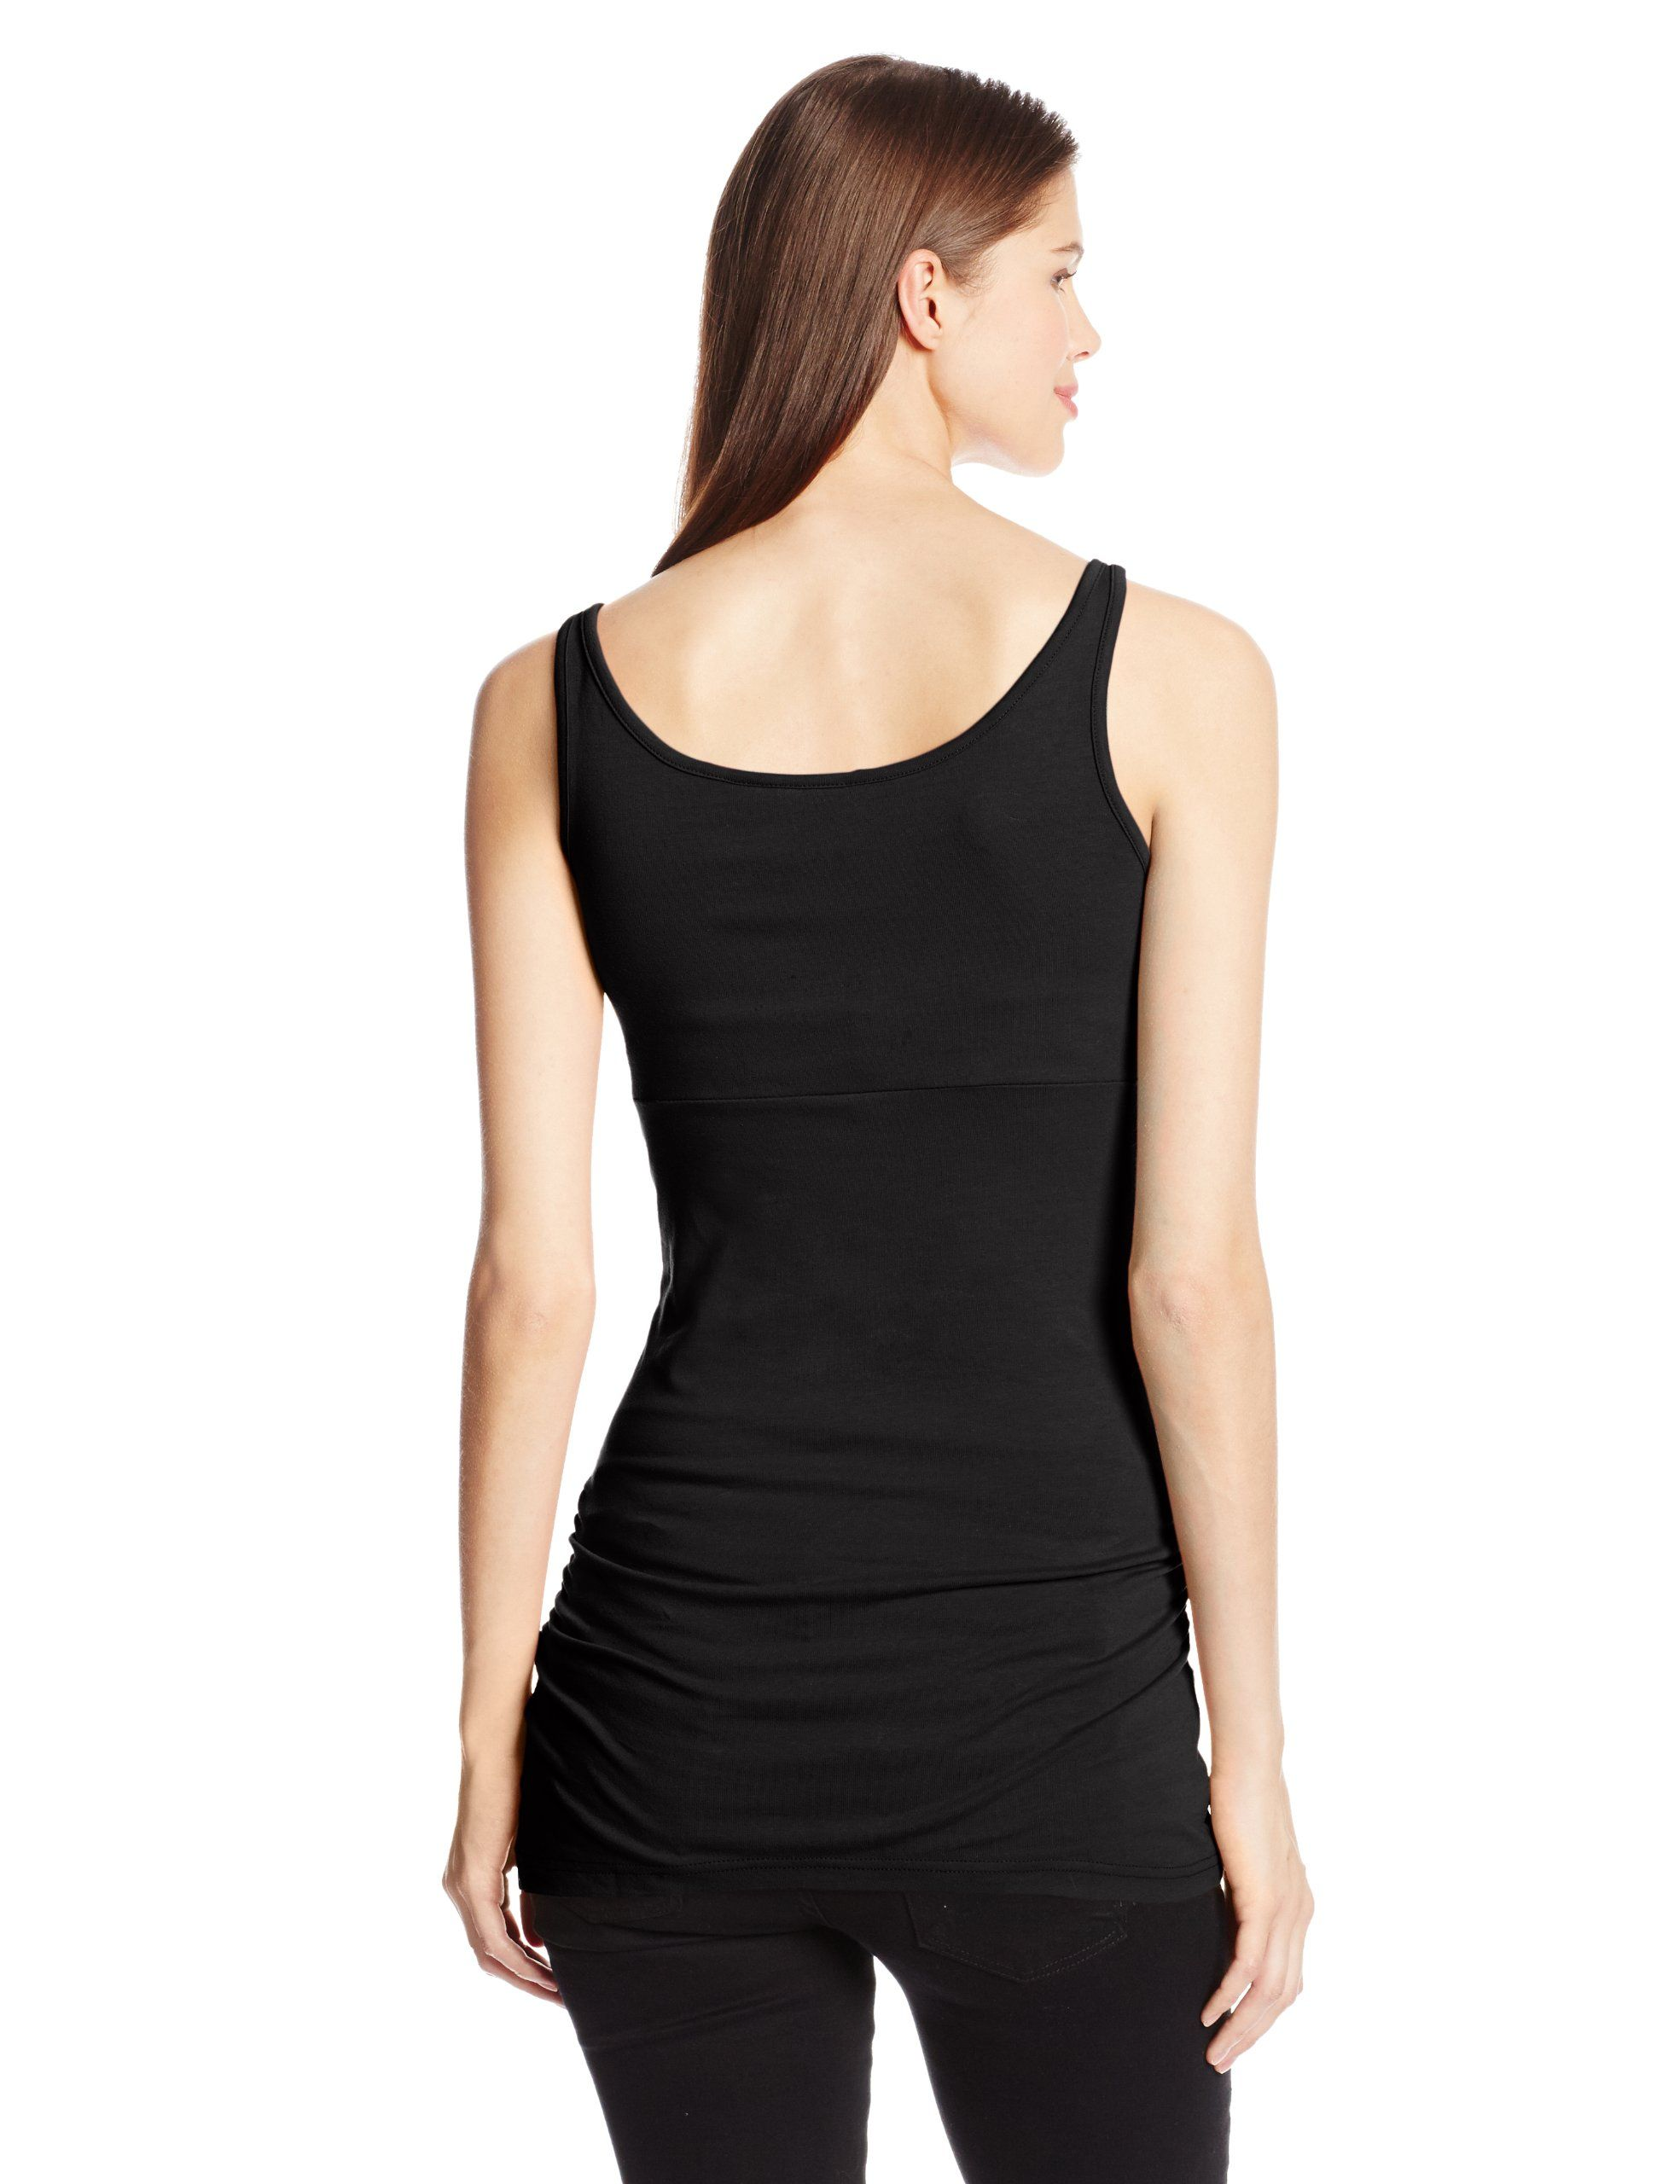 b9995f0053876 nursing tops - Goldenfox Womens Dreamy Comfort Cotton Seamless Maternity To  Nursing TankRose RedXXL ** Find out more at th…